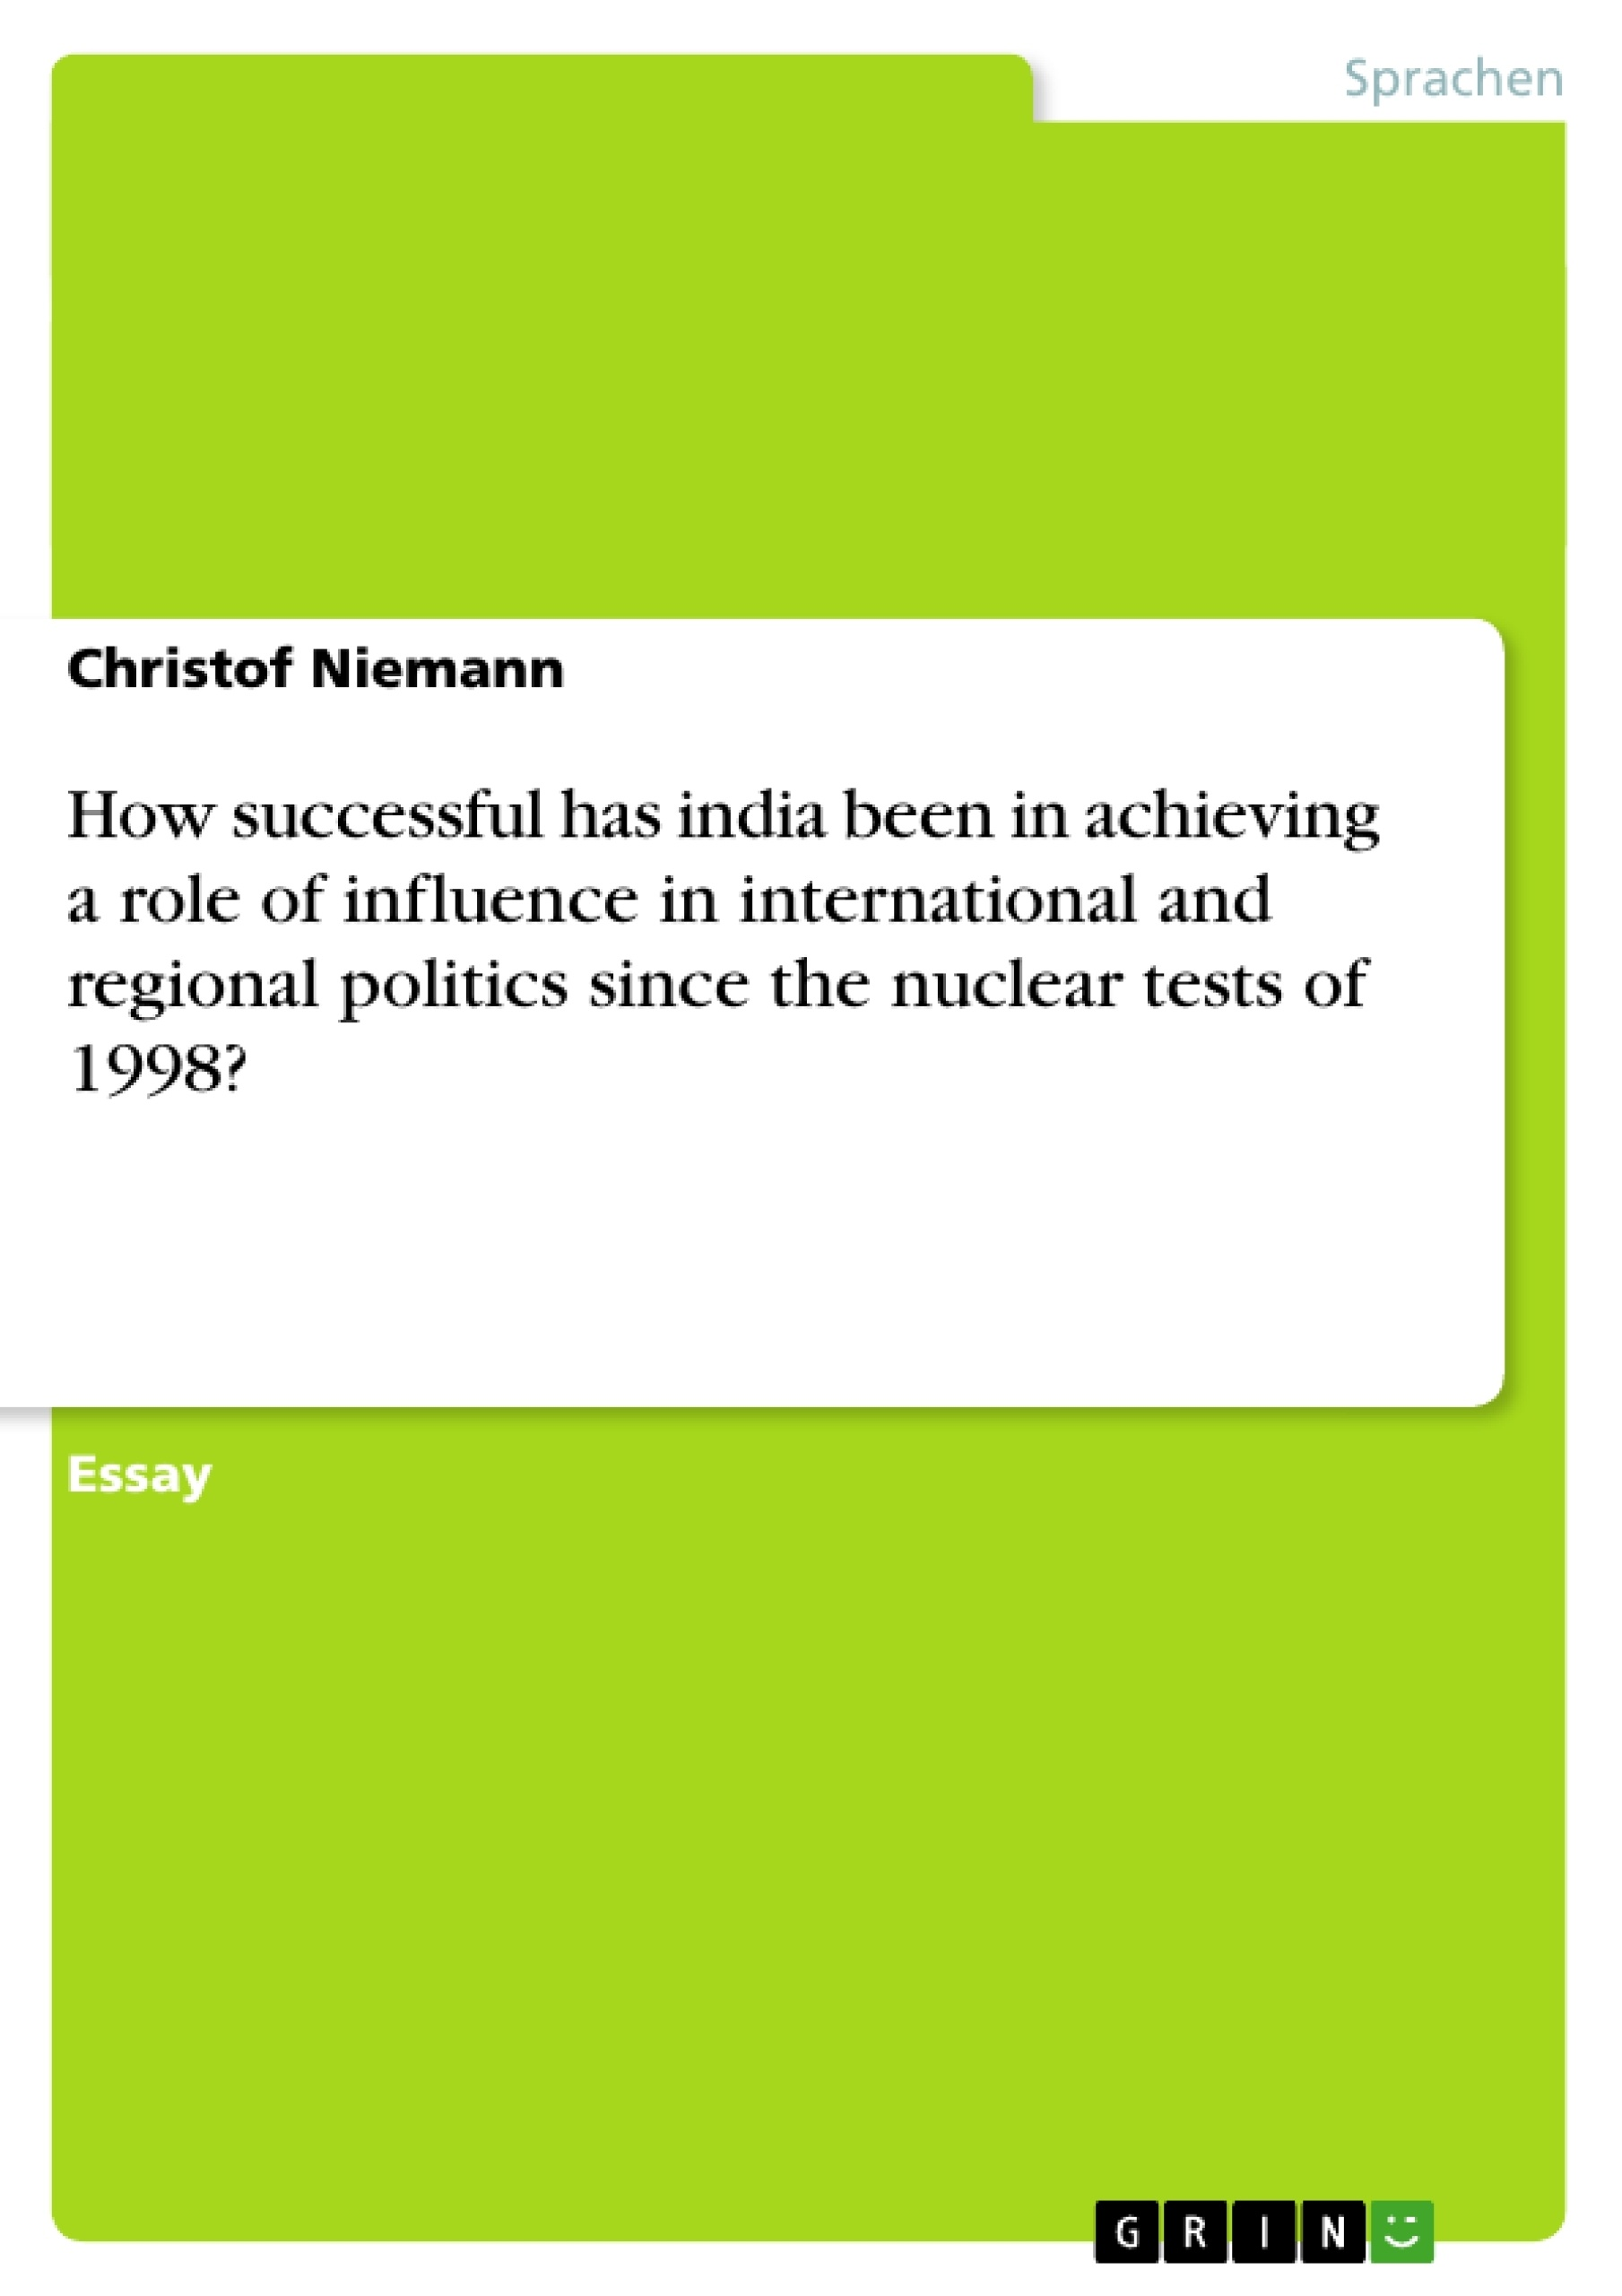 Titel: How successful has india been in achieving a role of influence in international and regional politics since the nuclear tests of 1998?